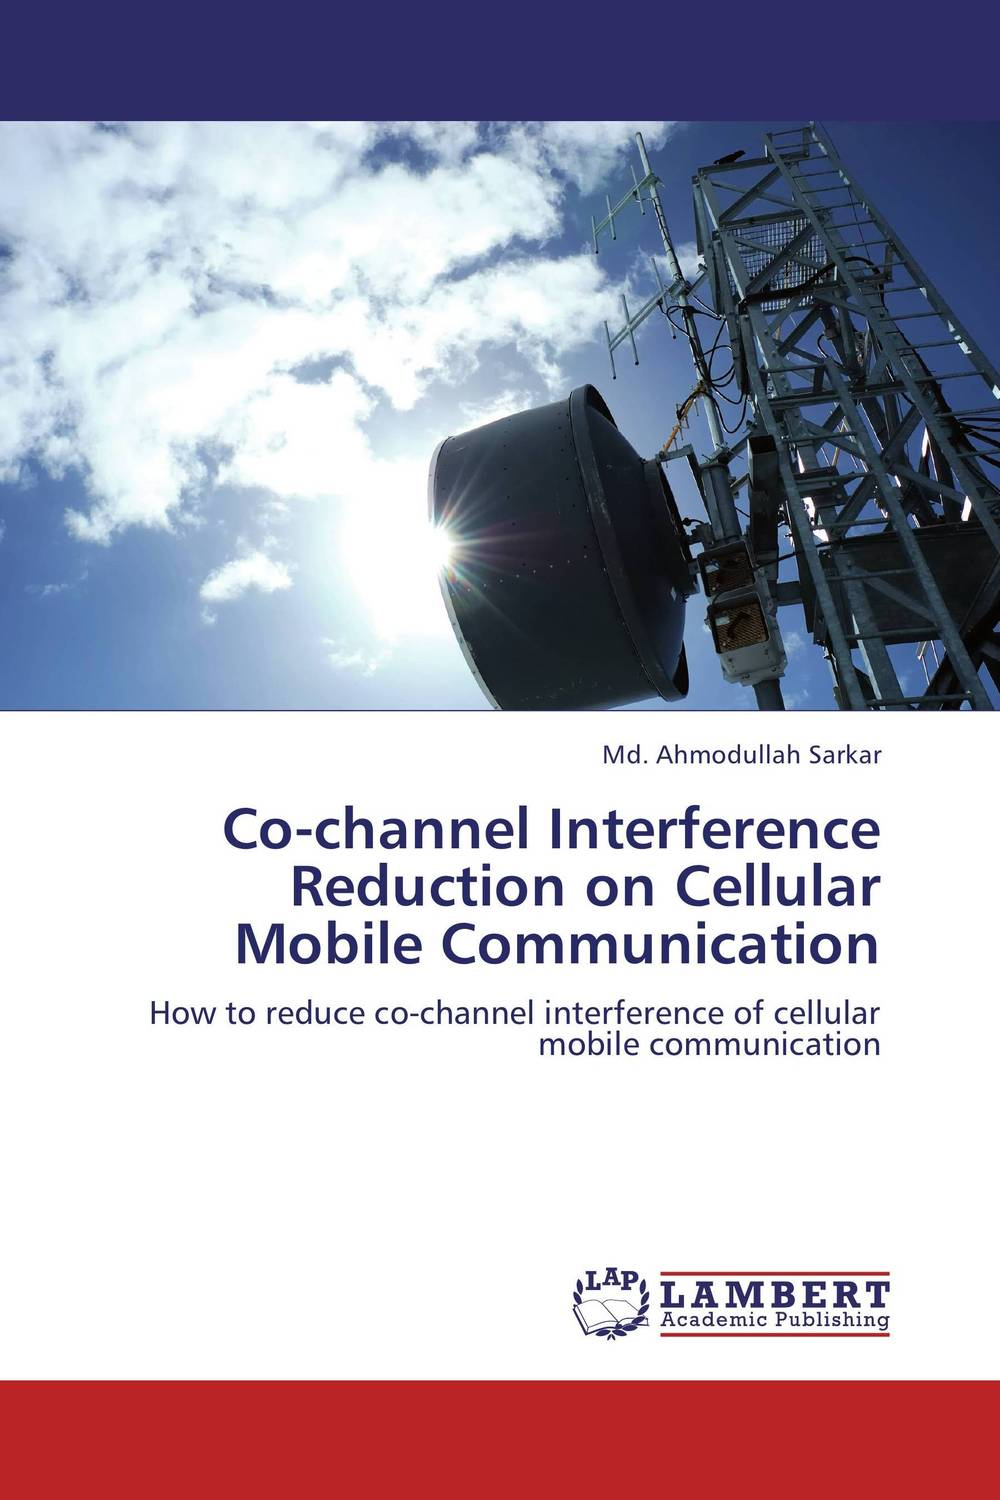 Co-channel Interference Reduction on Cellular Mobile Communication